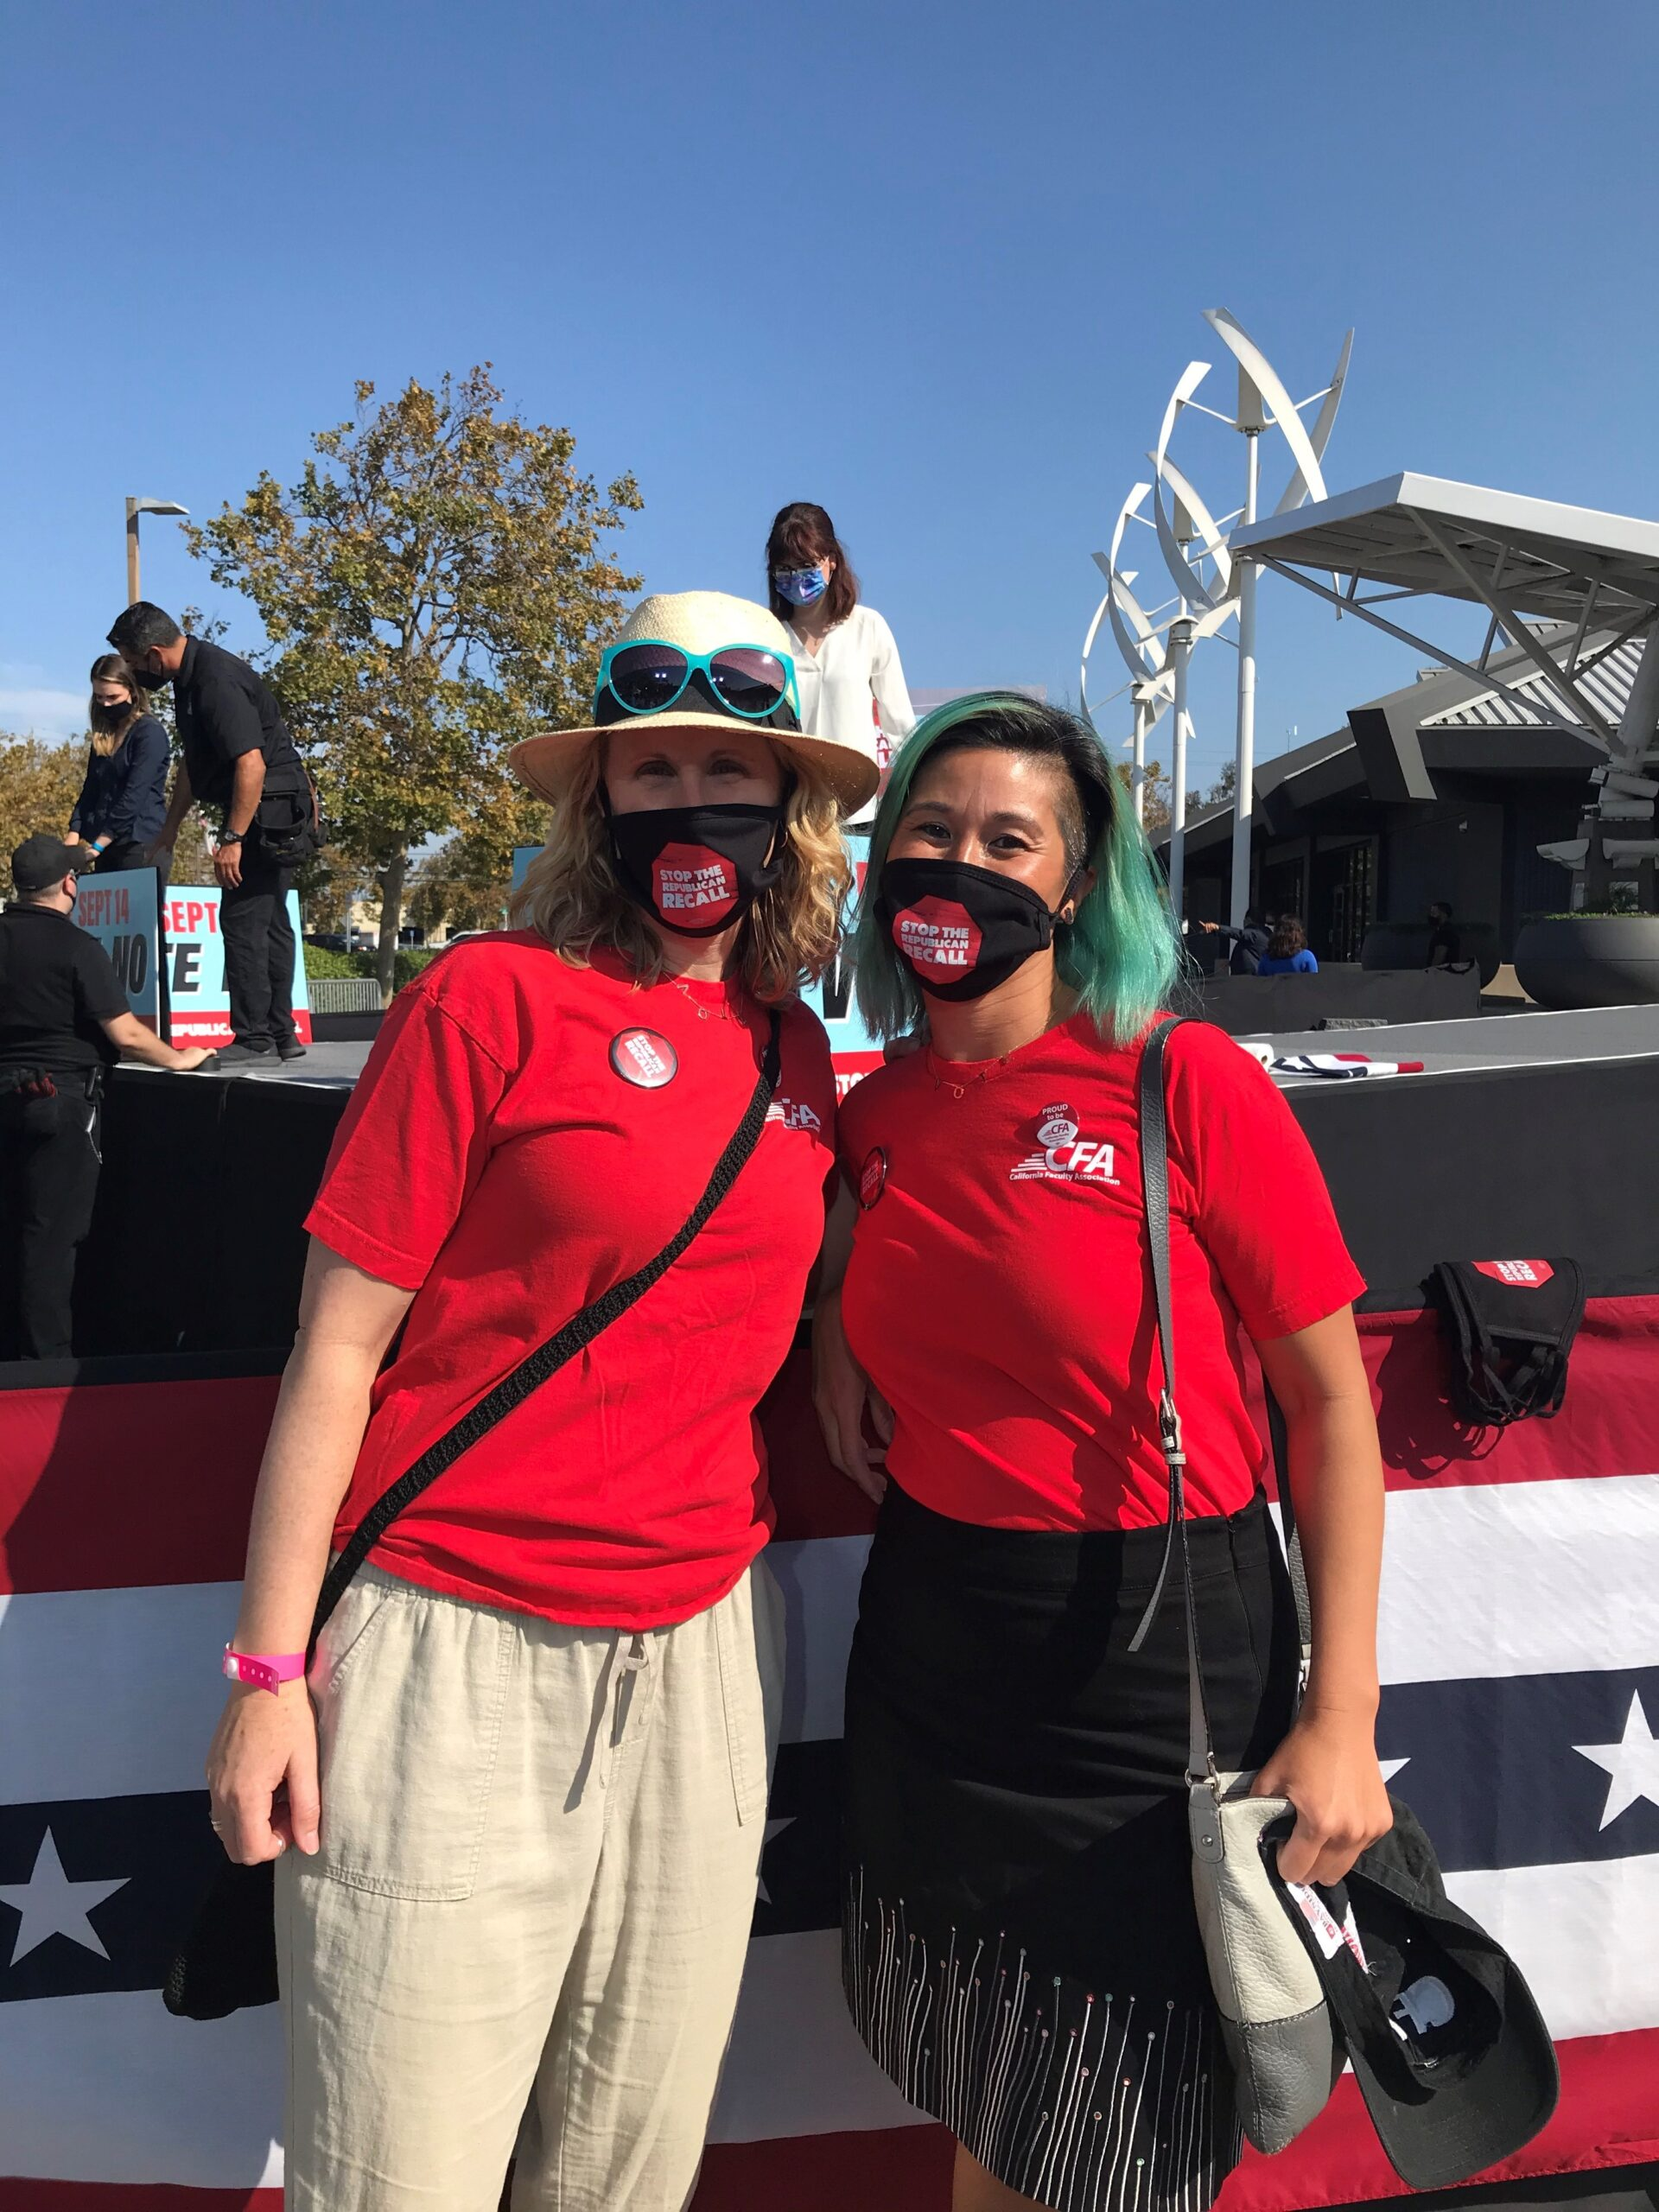 CFA East Bay members Amy Below and Danvy Le attend attend a No on the Recall rally in their red CFA shirts and anti-recall black and red face masks.